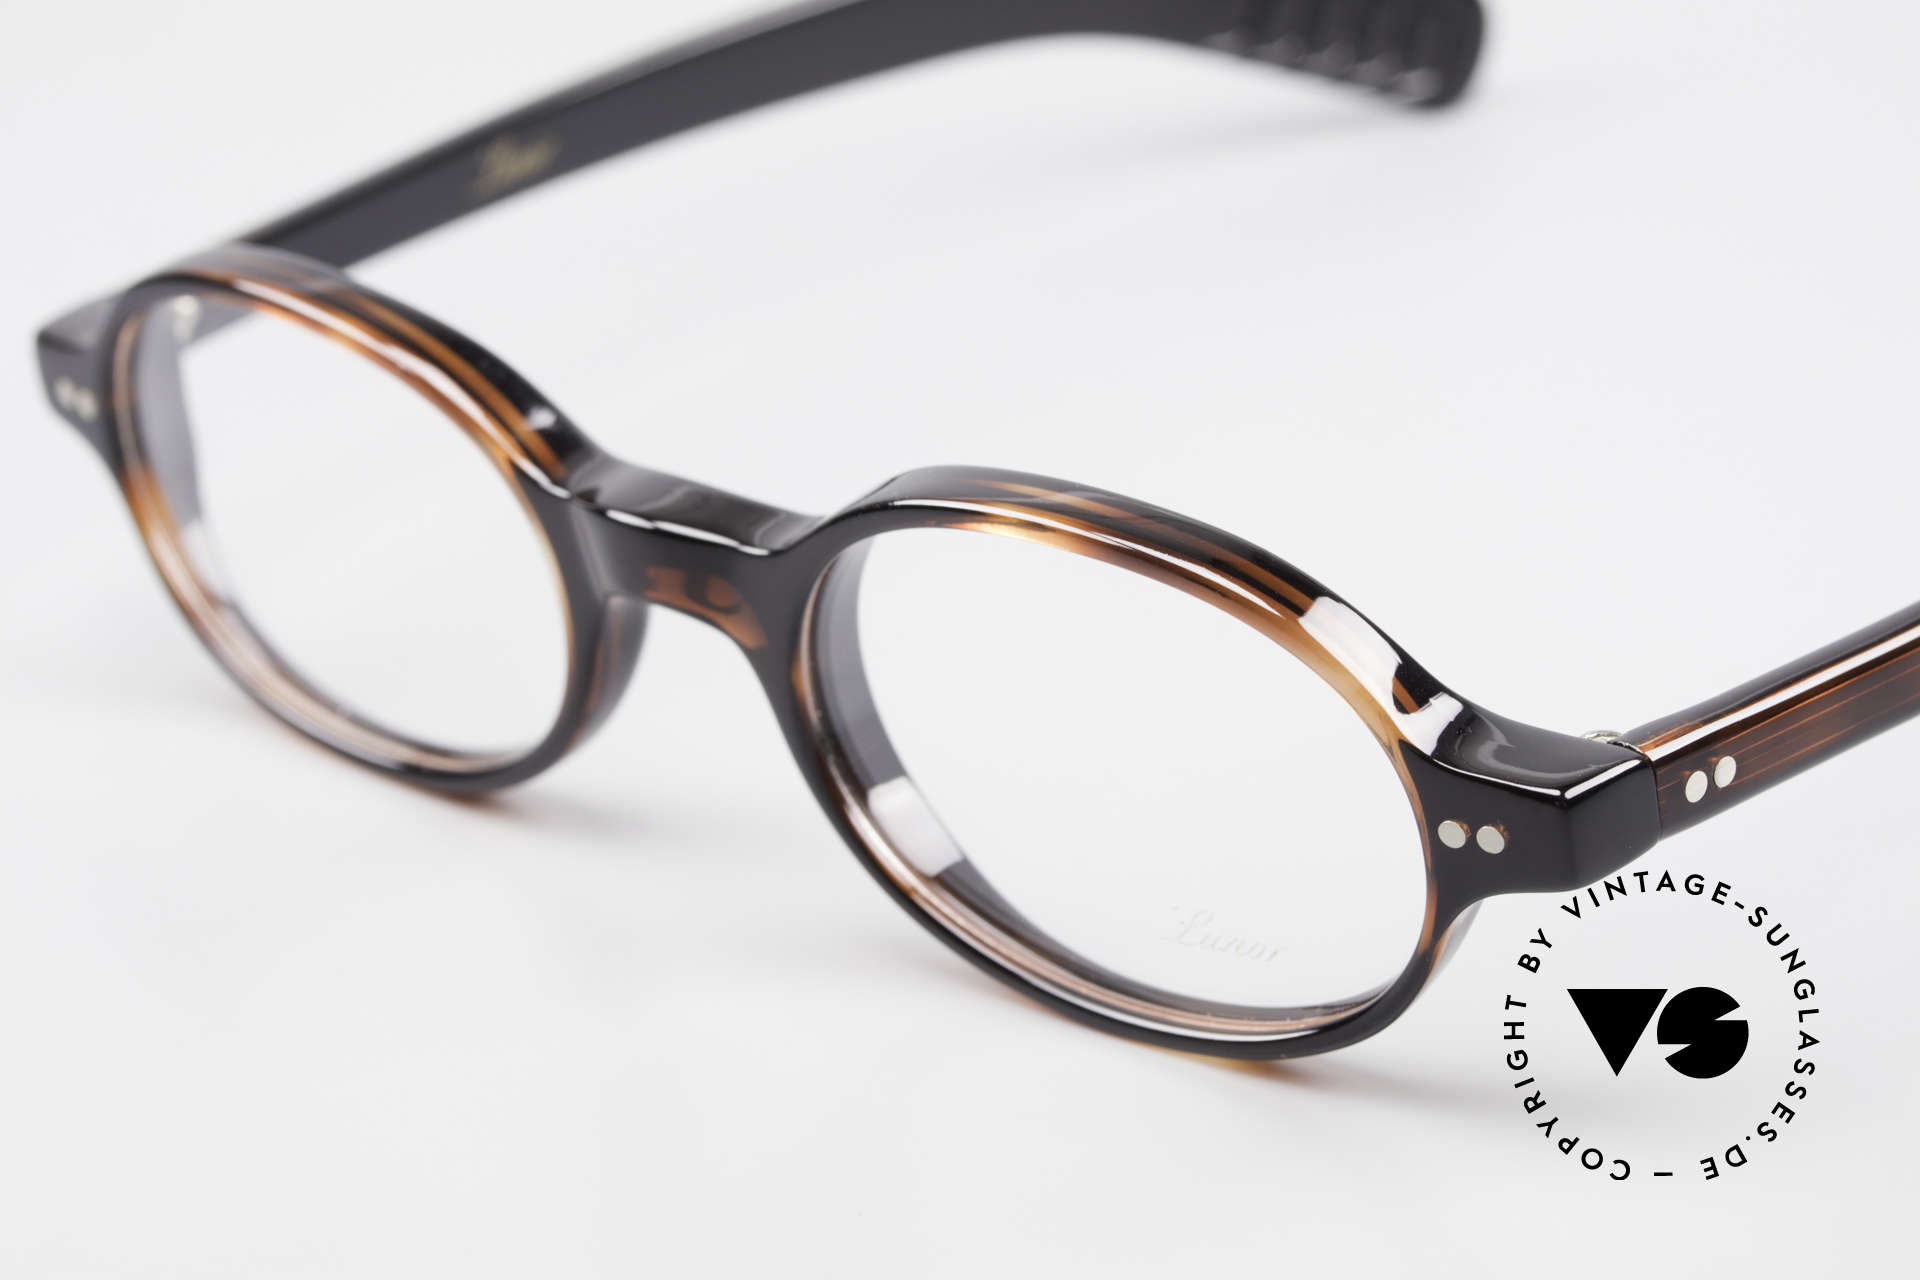 Lunor A57 Oval Lunor Acetate Glasses, 100% made in Germany & hand-polished (a masterpiece), Made for Men and Women